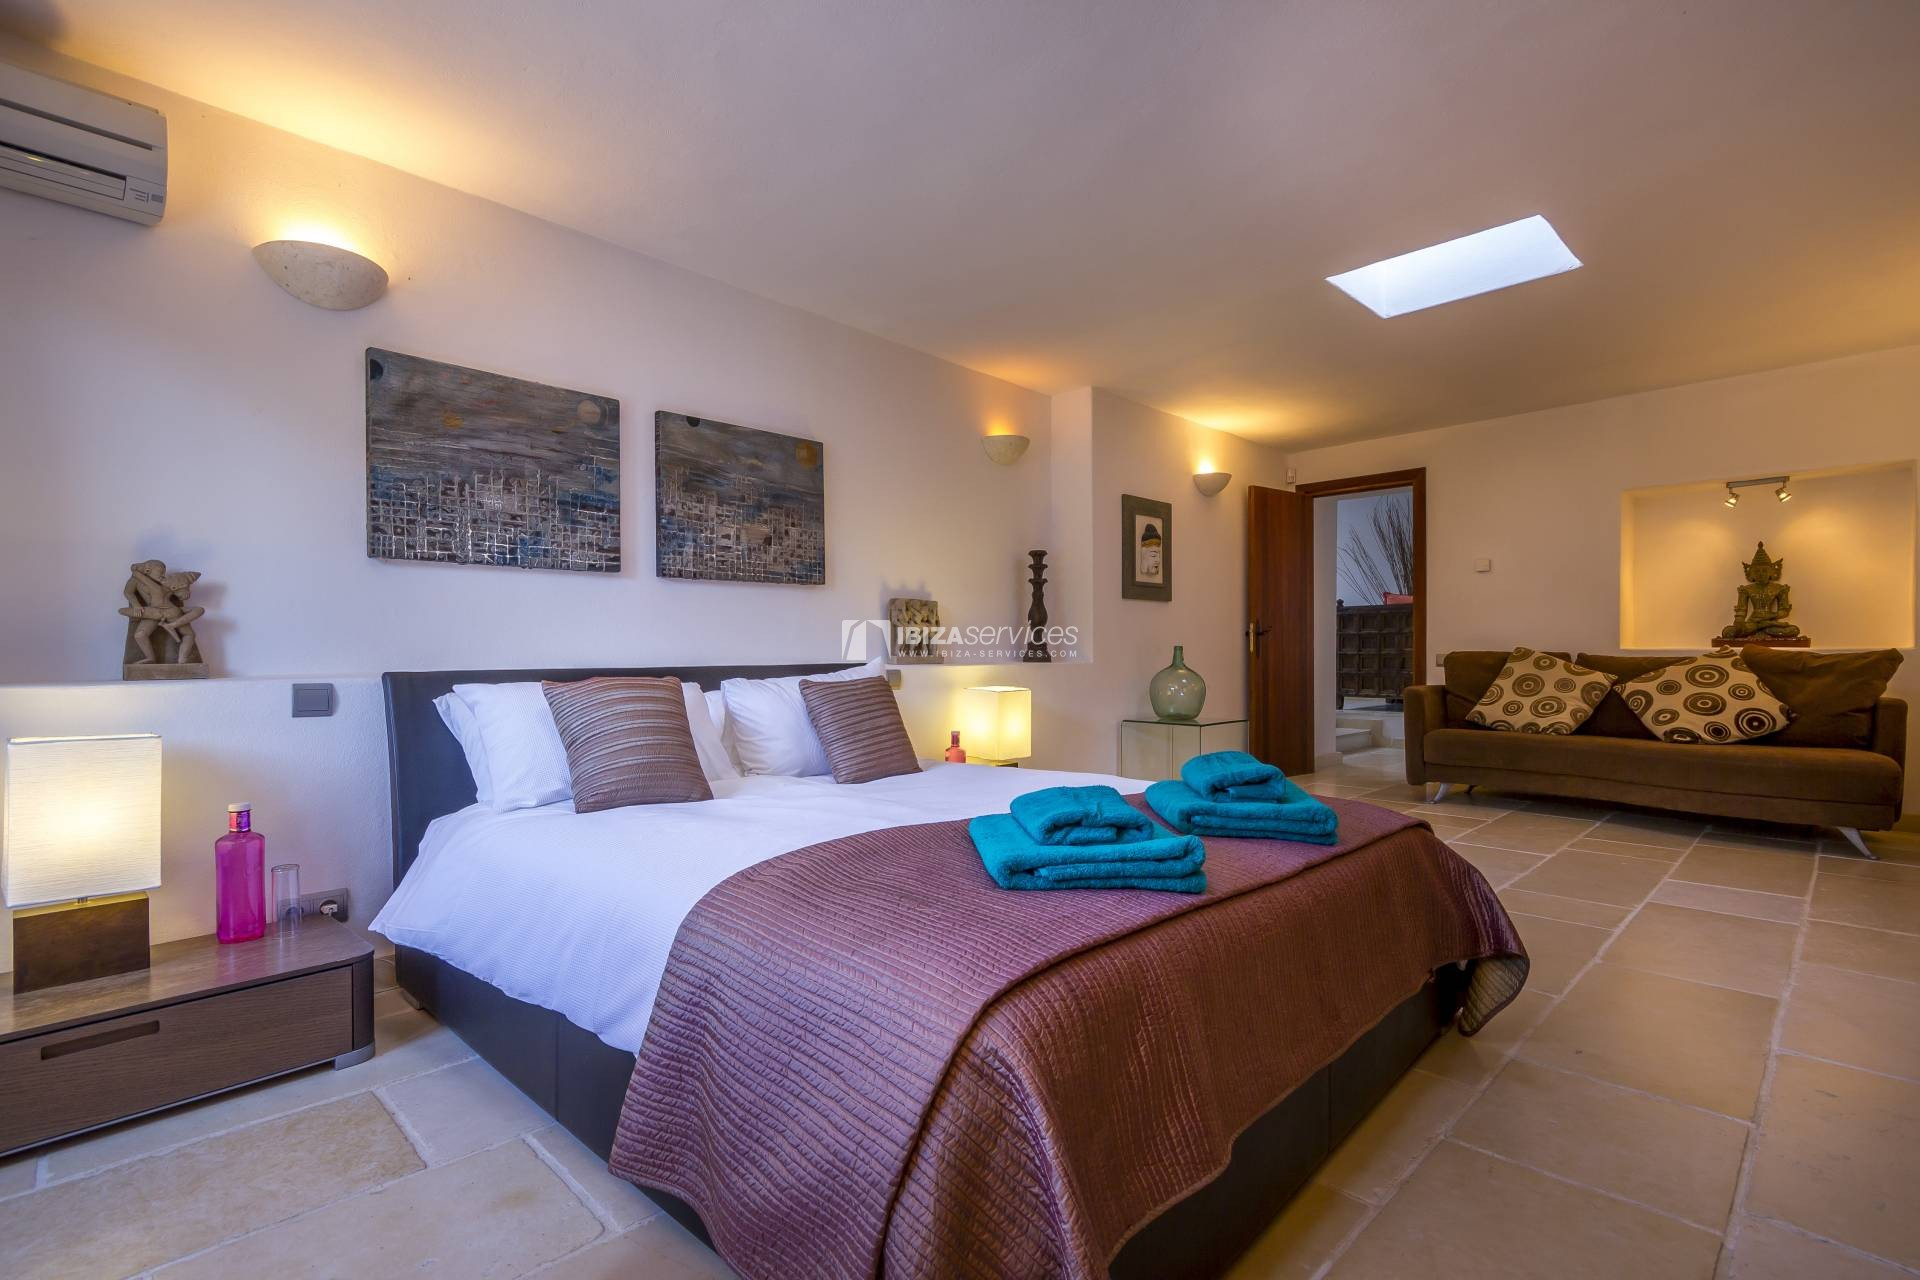 Beautifully finca located between St gertudis and San lorenzo perspectiva 28